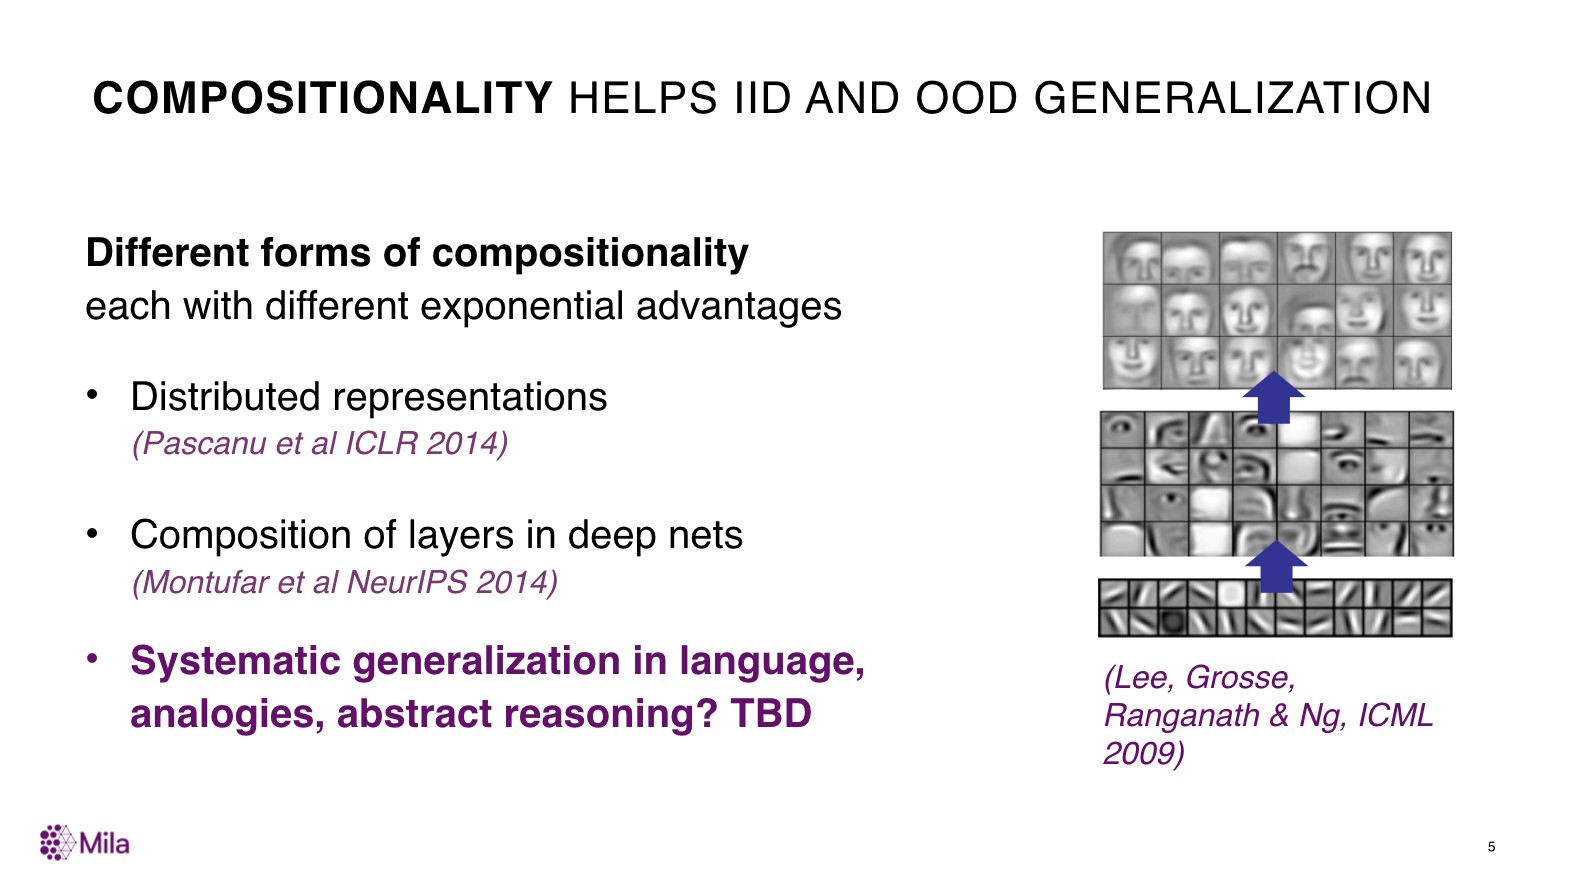 Compositionality helps iid and ood generalization